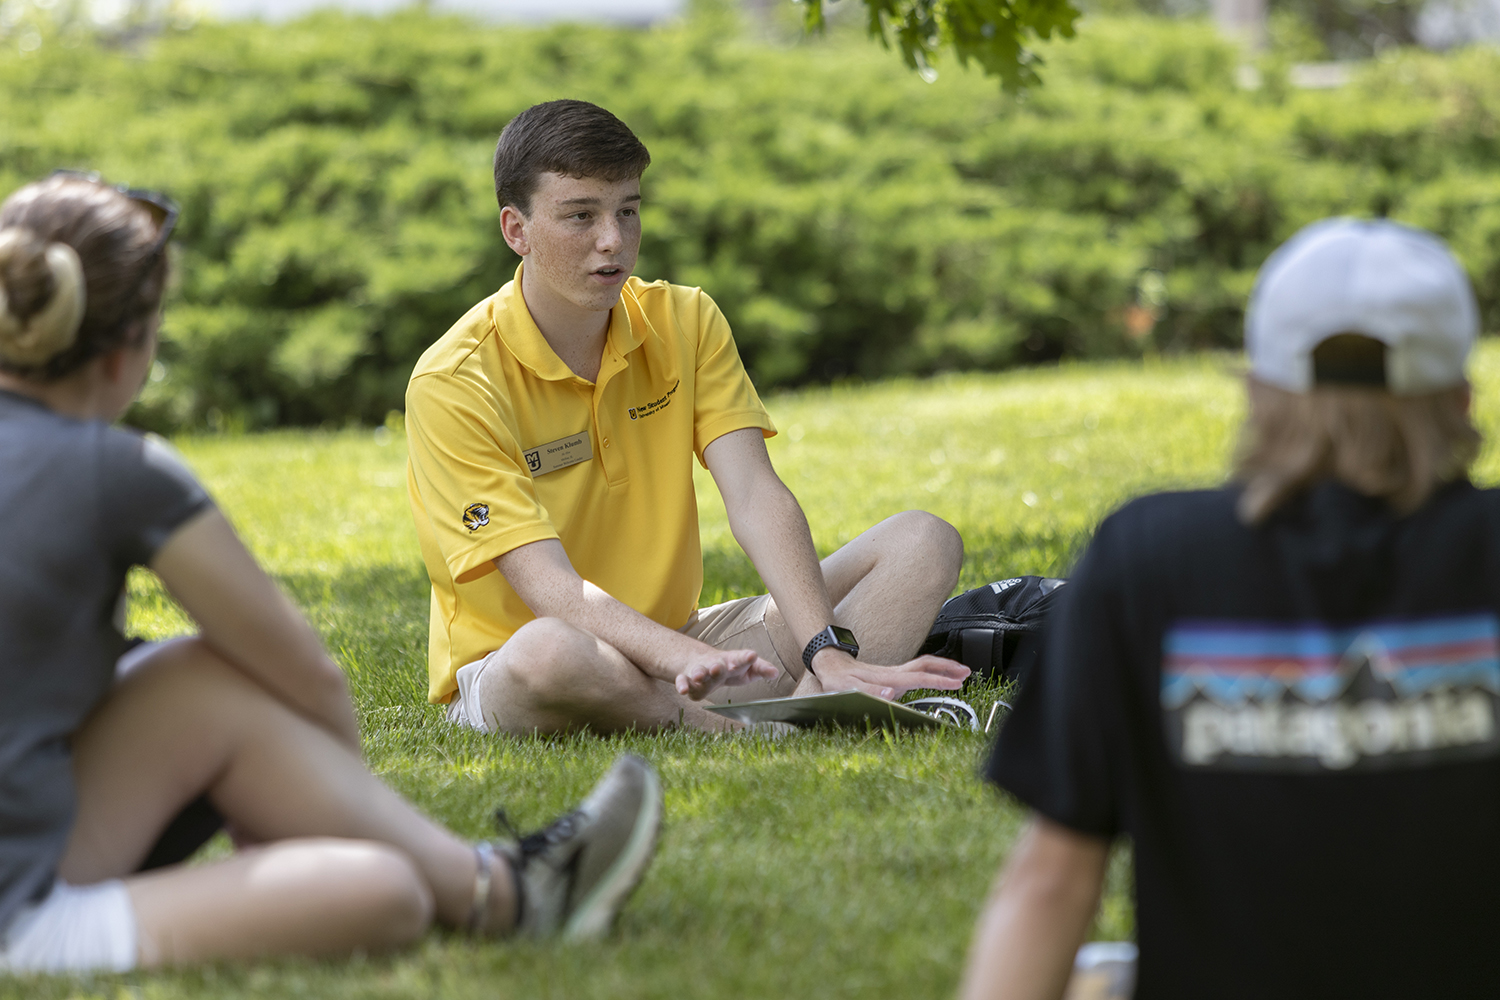 a young man in a yellow shirt sits in a circle with other students whose backs we see